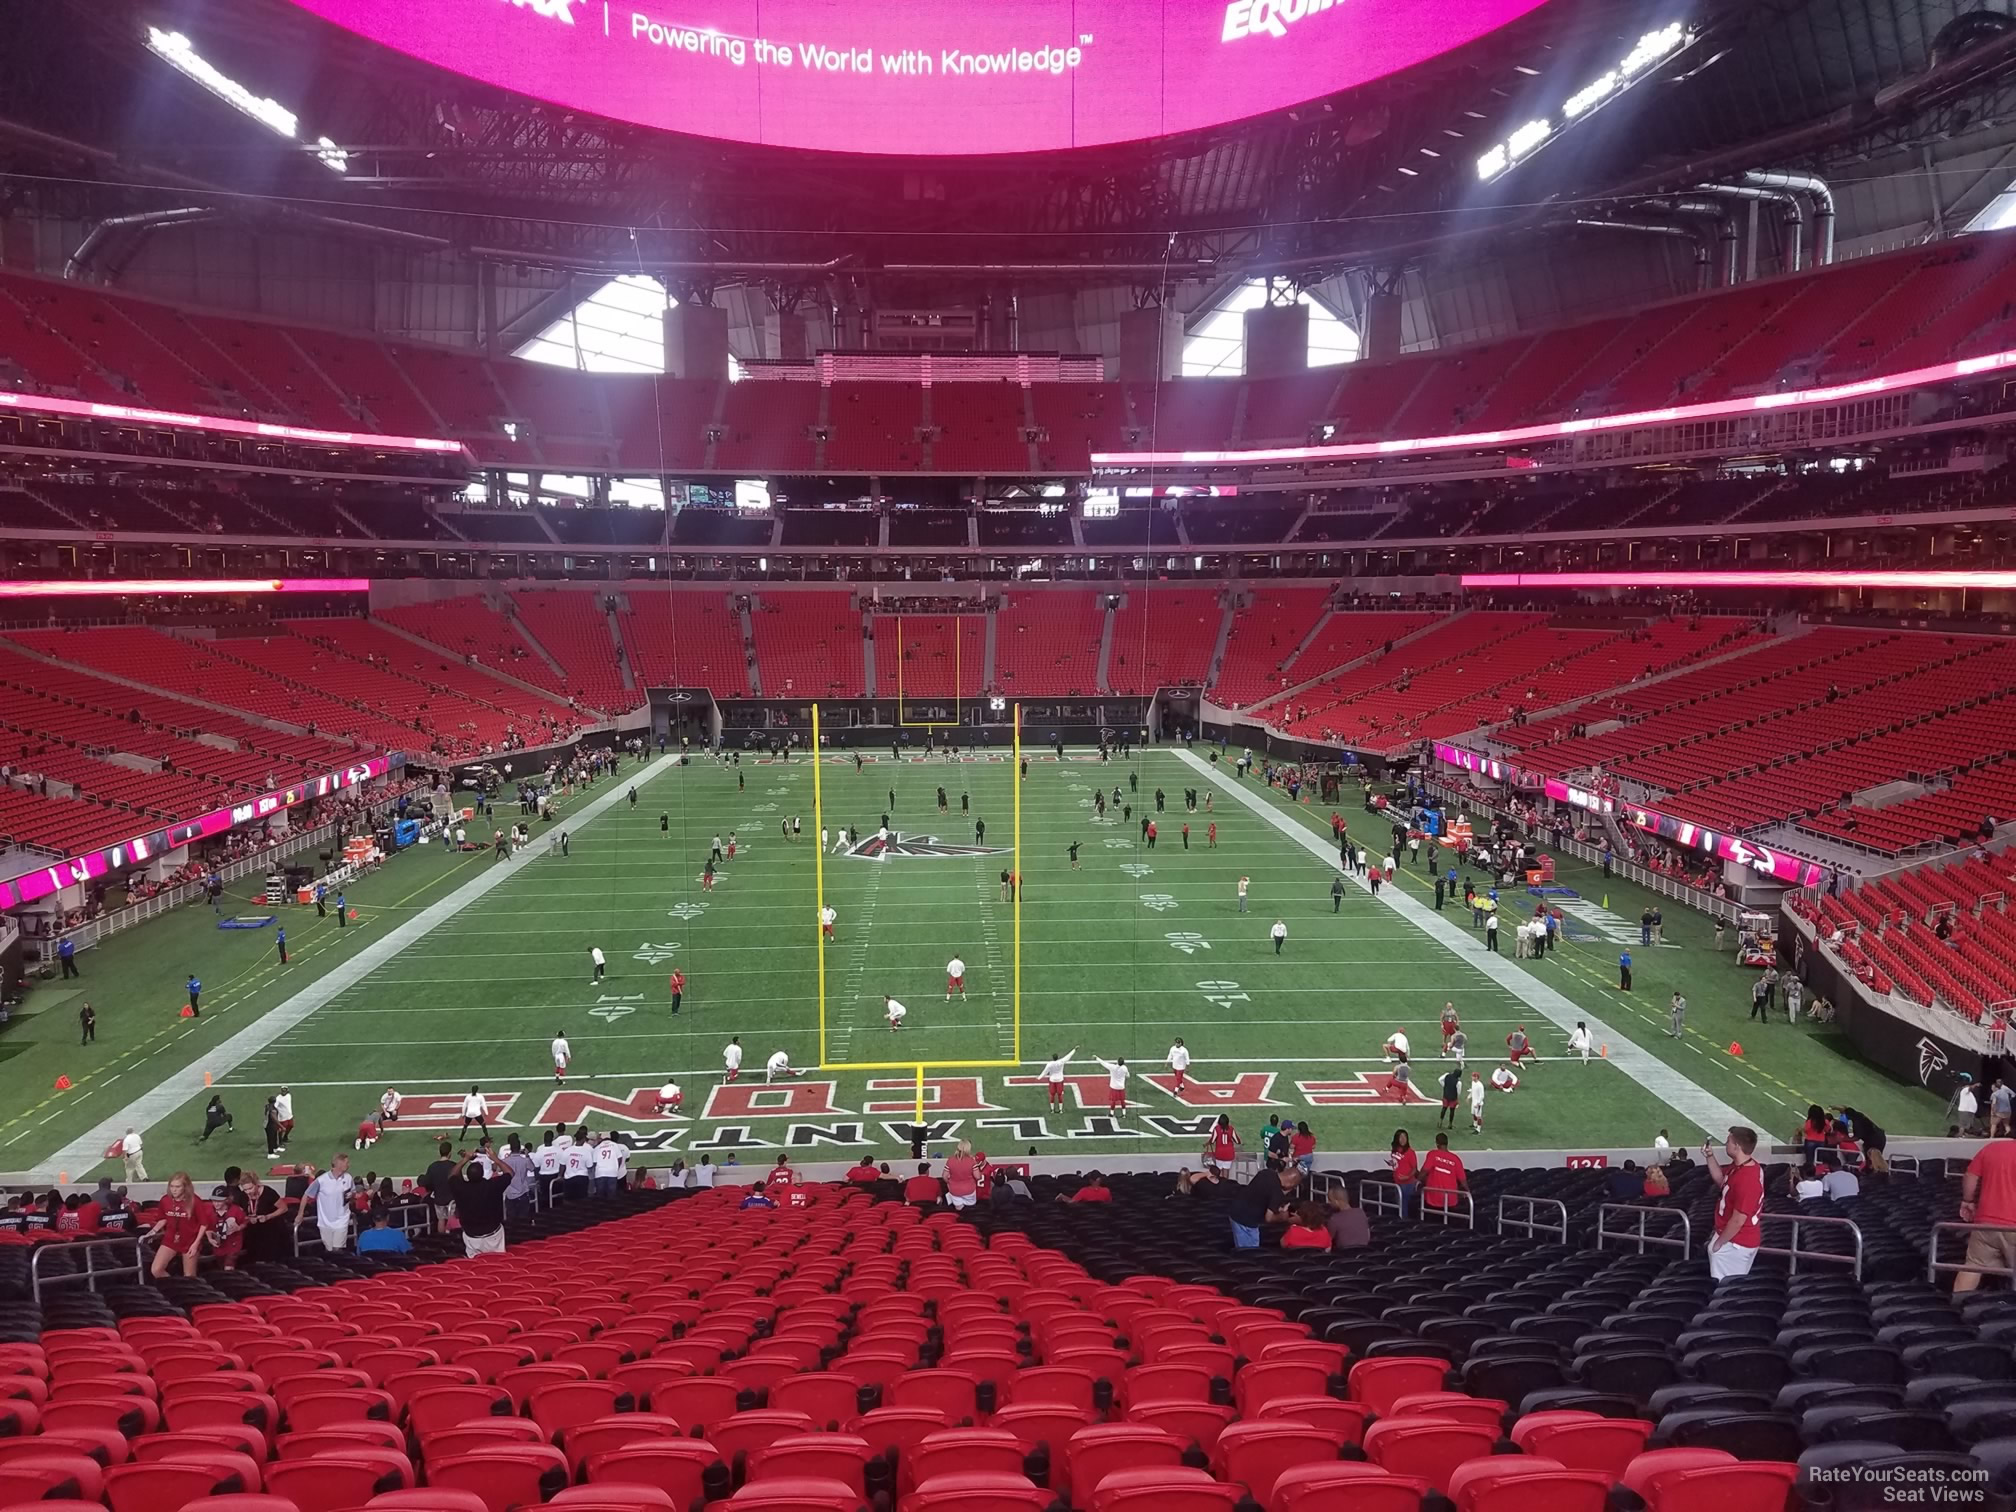 How many seats in a row at mercedes benz superdome for Mercedes benz stadium virtual seating